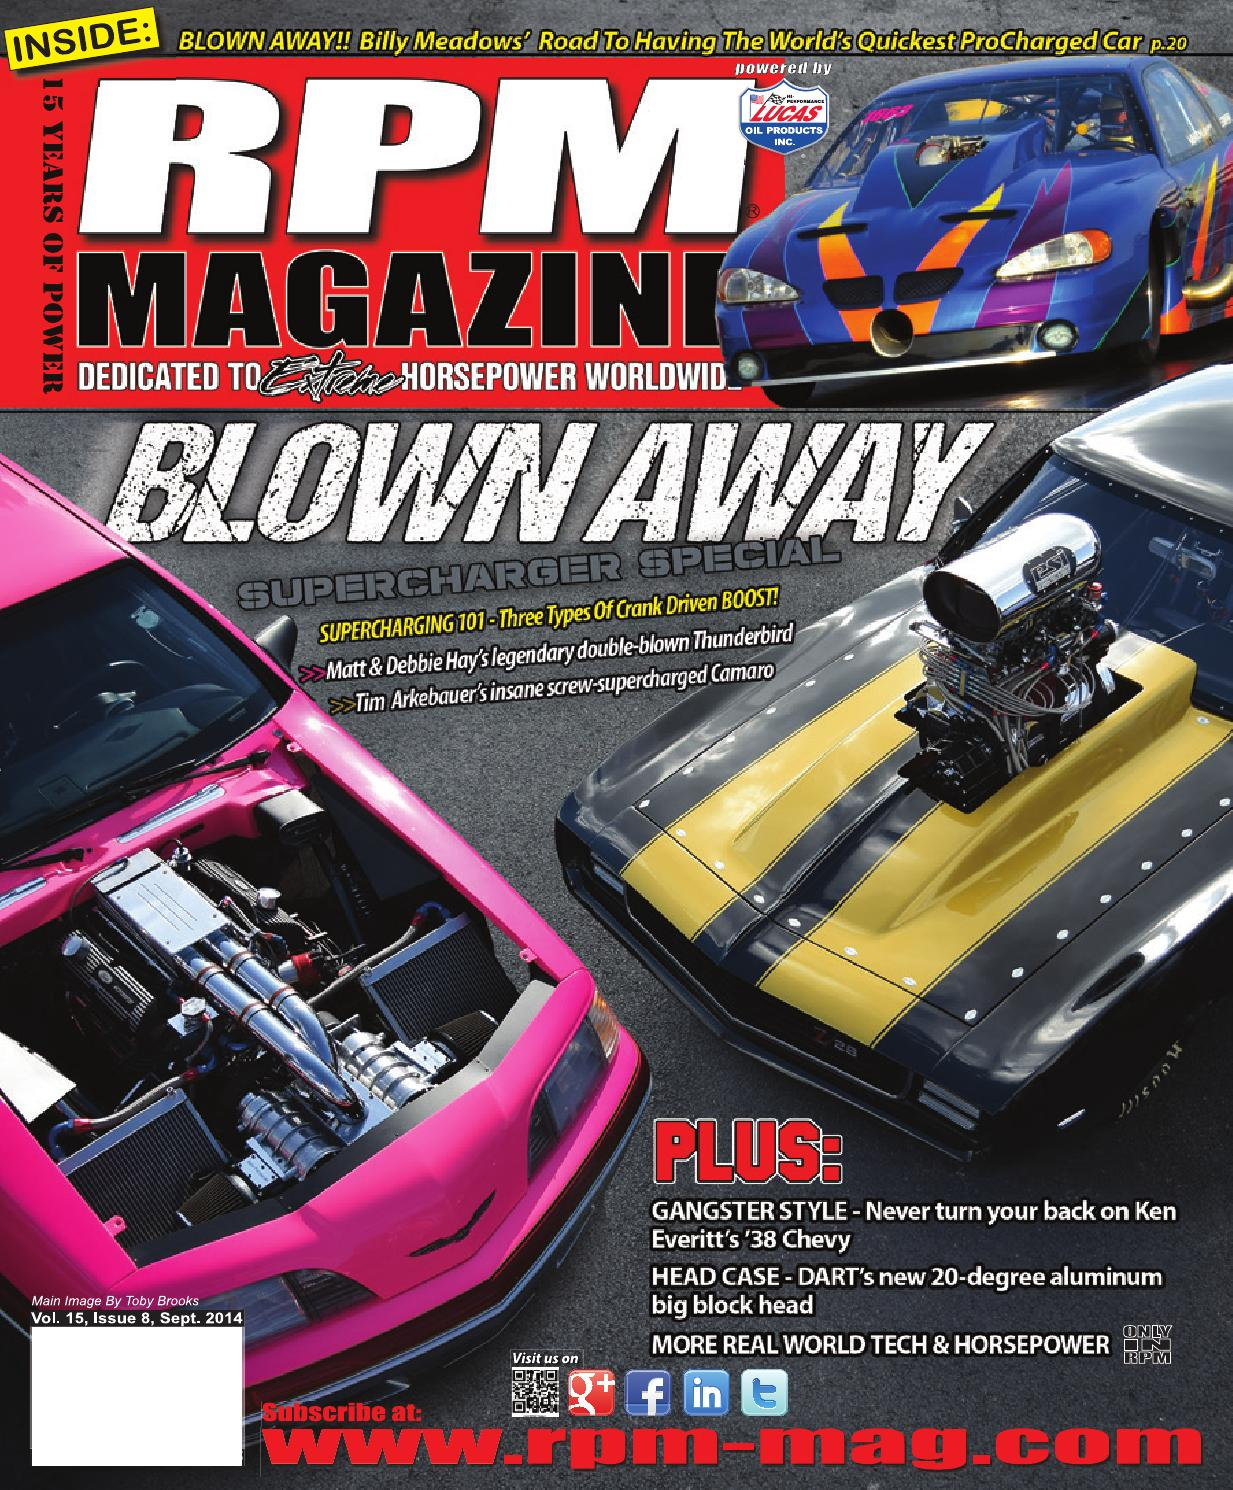 Rpm Magazine September Issue 2014 By Issuu 0654277 Carling 50 Amp Red Black Boat On Off Rocker Circuit Breaker